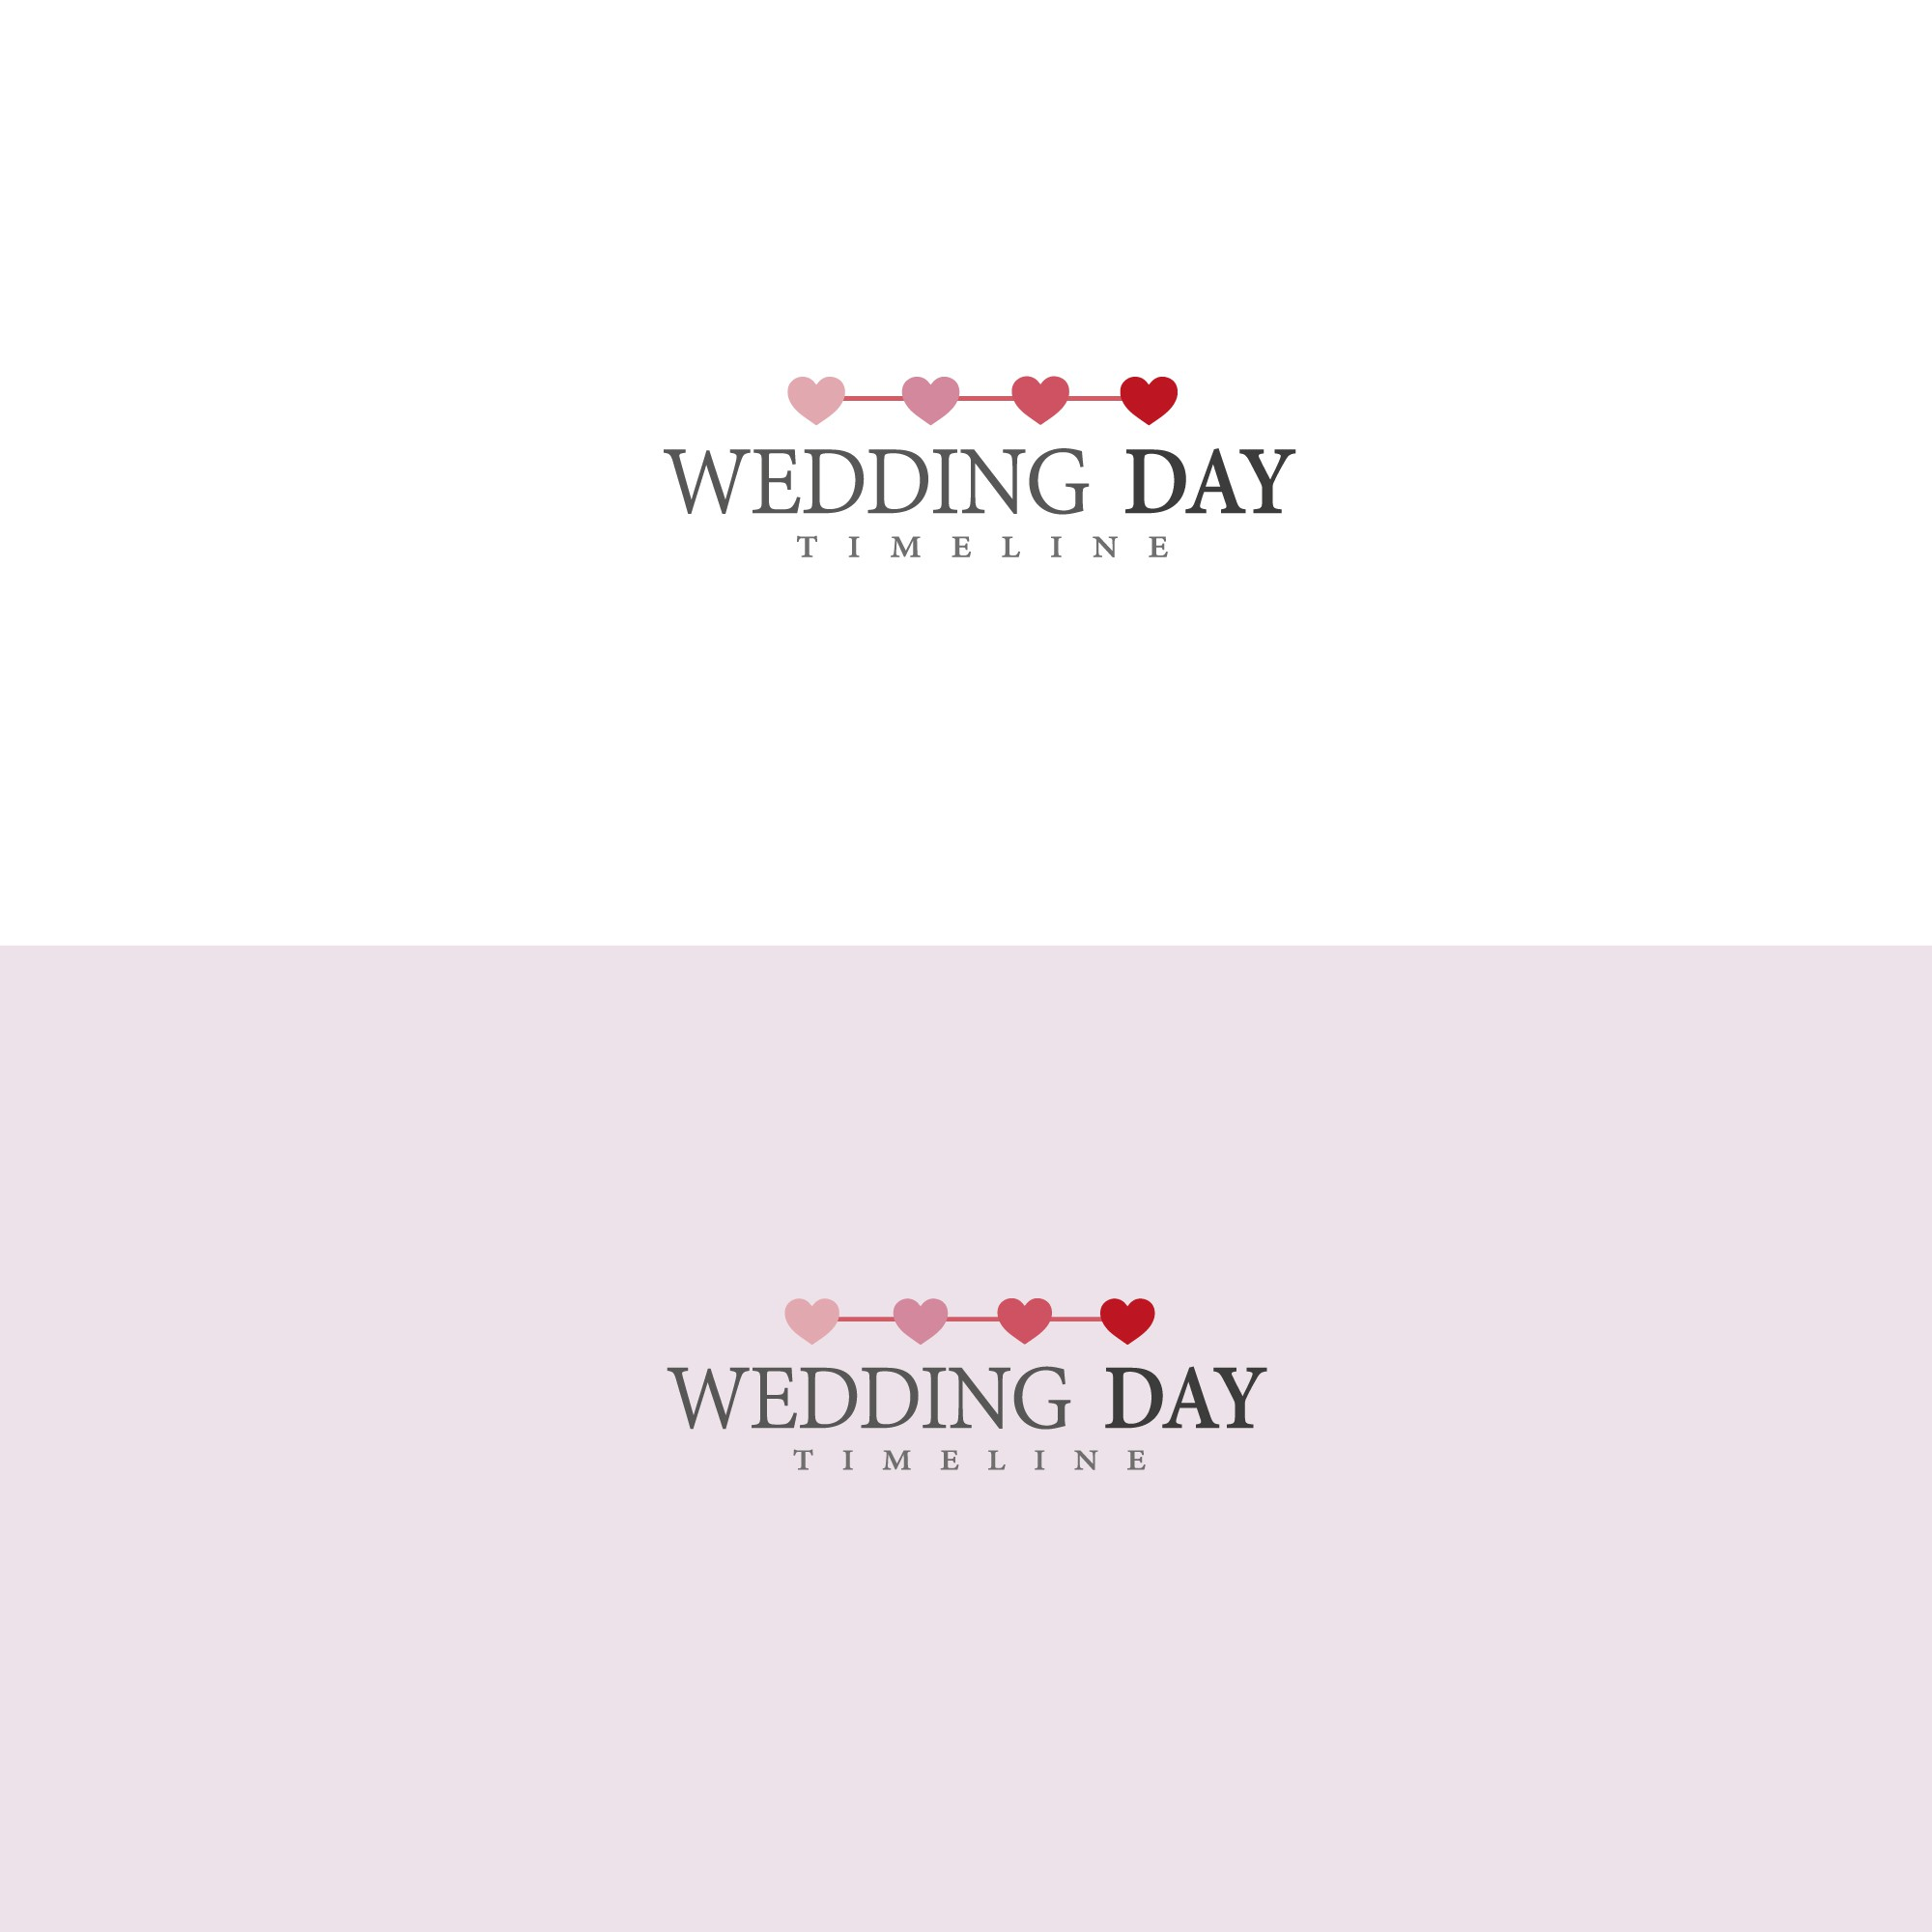 Clean and modern logo needed for wedding based service.